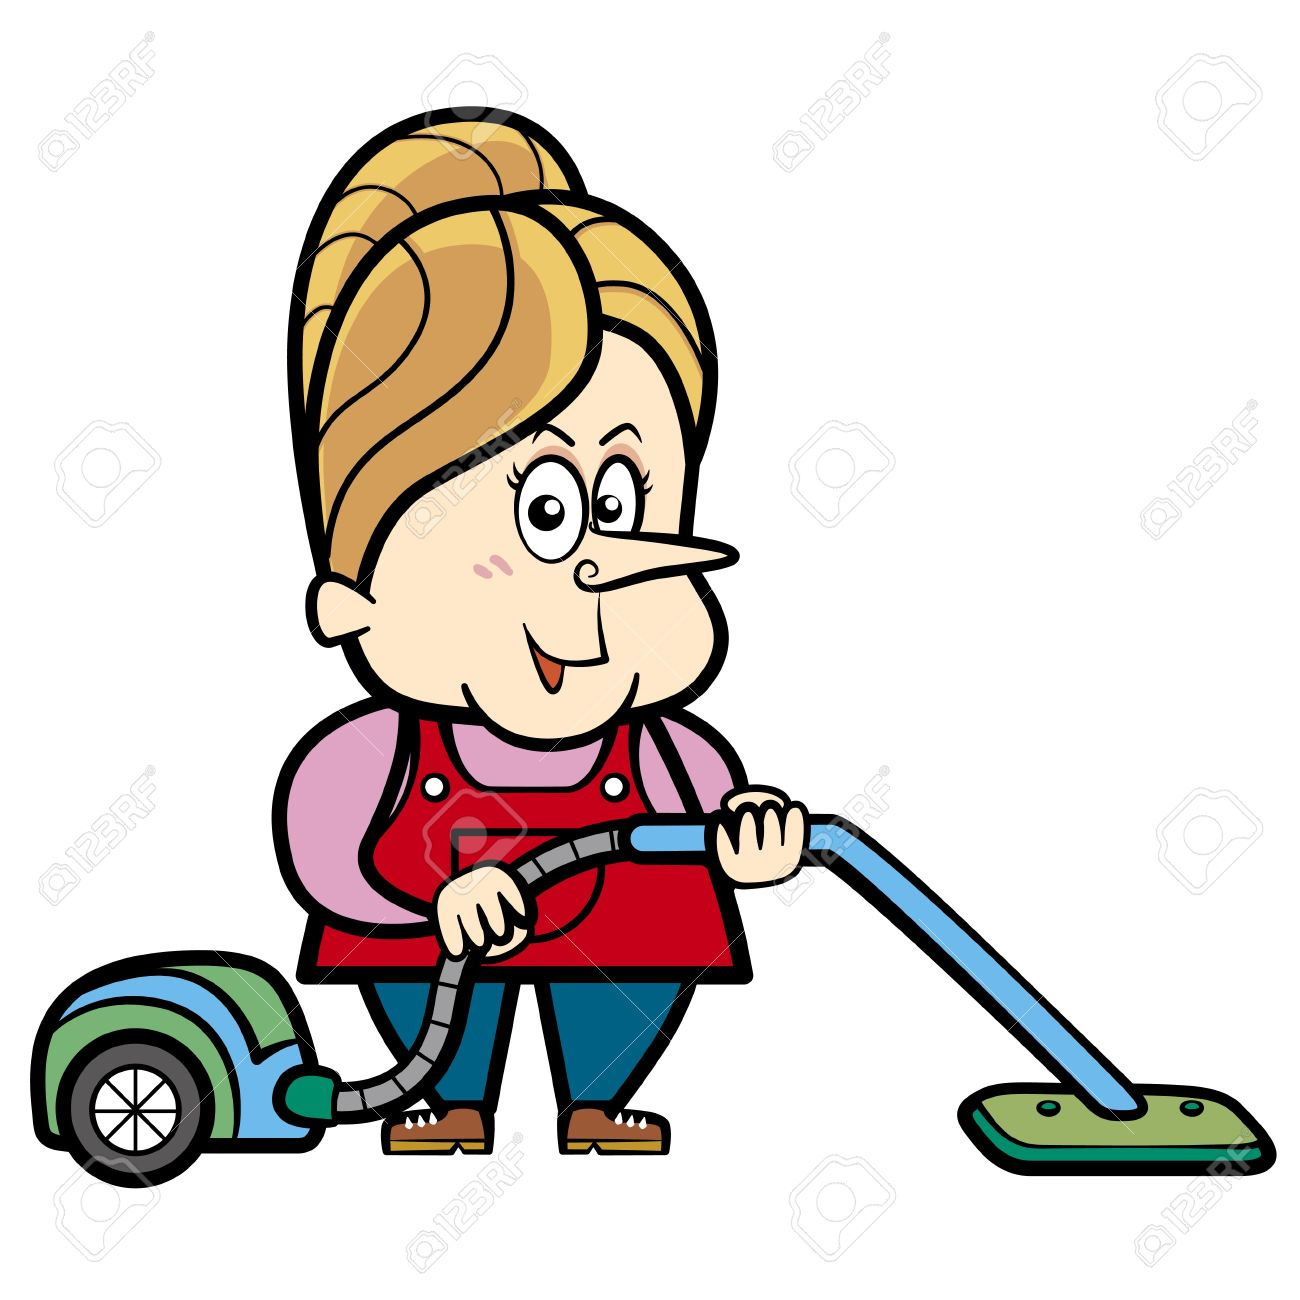 Vacuum cleaner clipart vacuum cleaner clip art - Vacuum Cleaner Cartoon Housewife With A Vacuum Cleaner Illustration